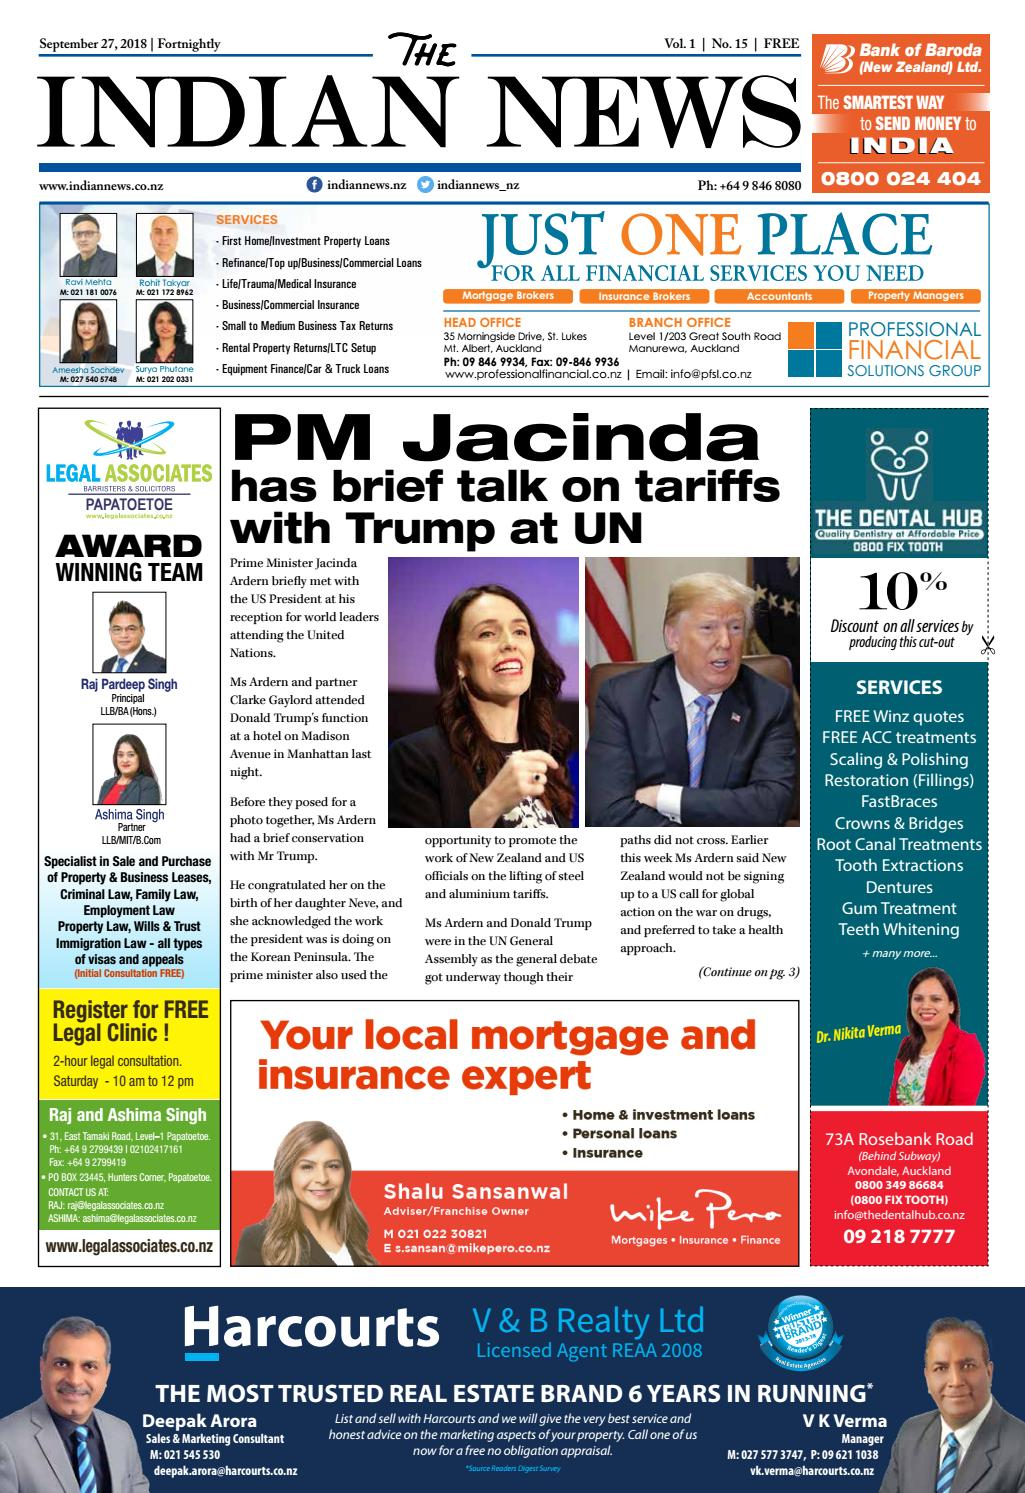 The Indian News - Vol1 Issue15 by The Indian News - issuu